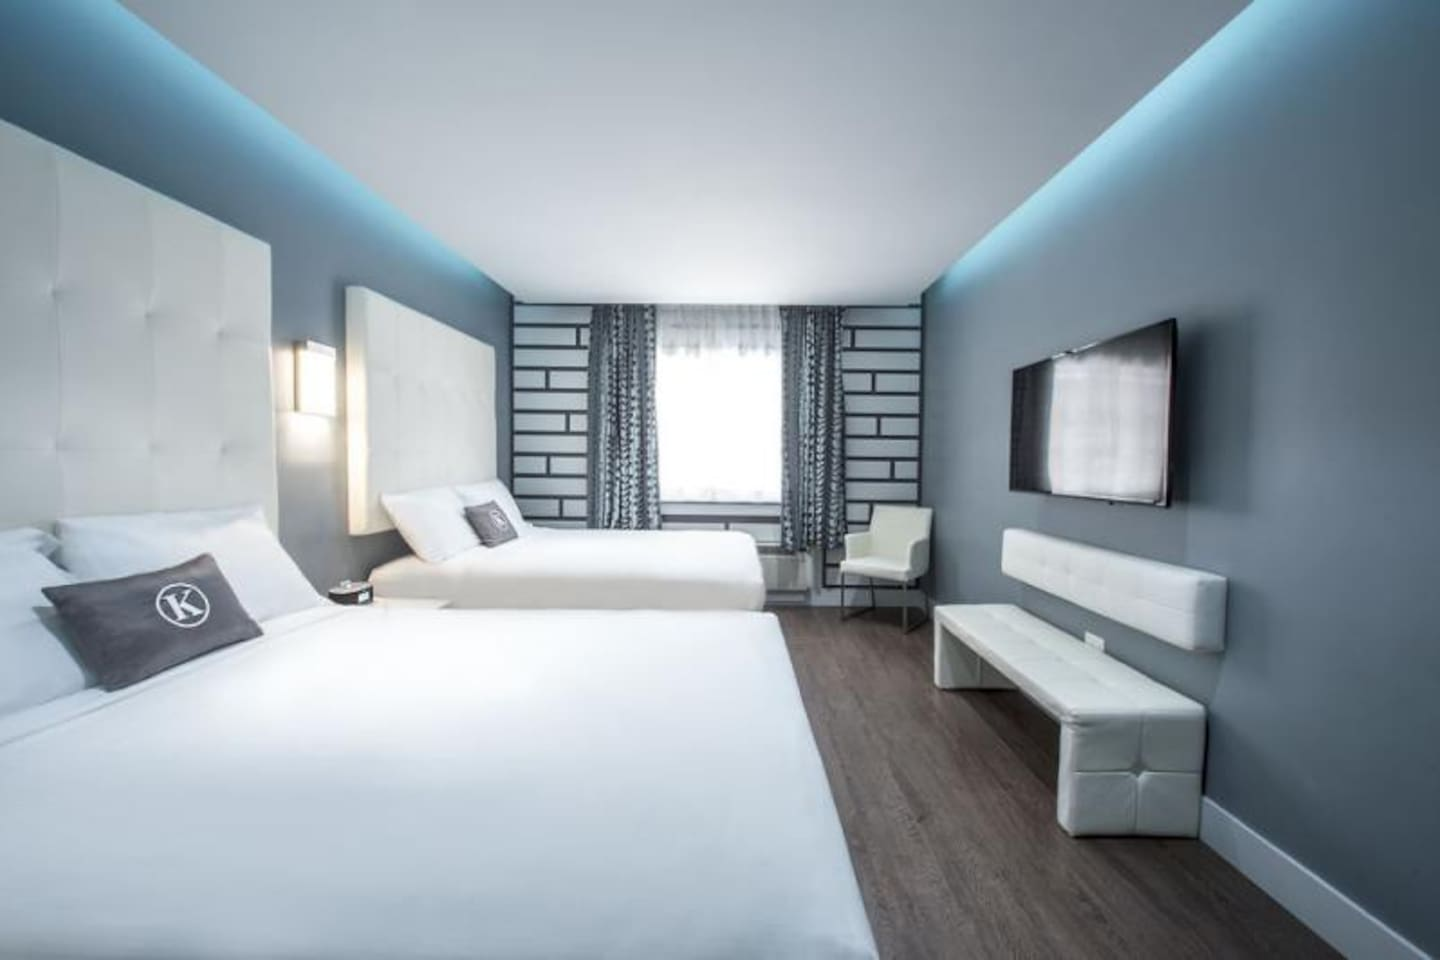 Modern units, with comfy beds are available, book now!